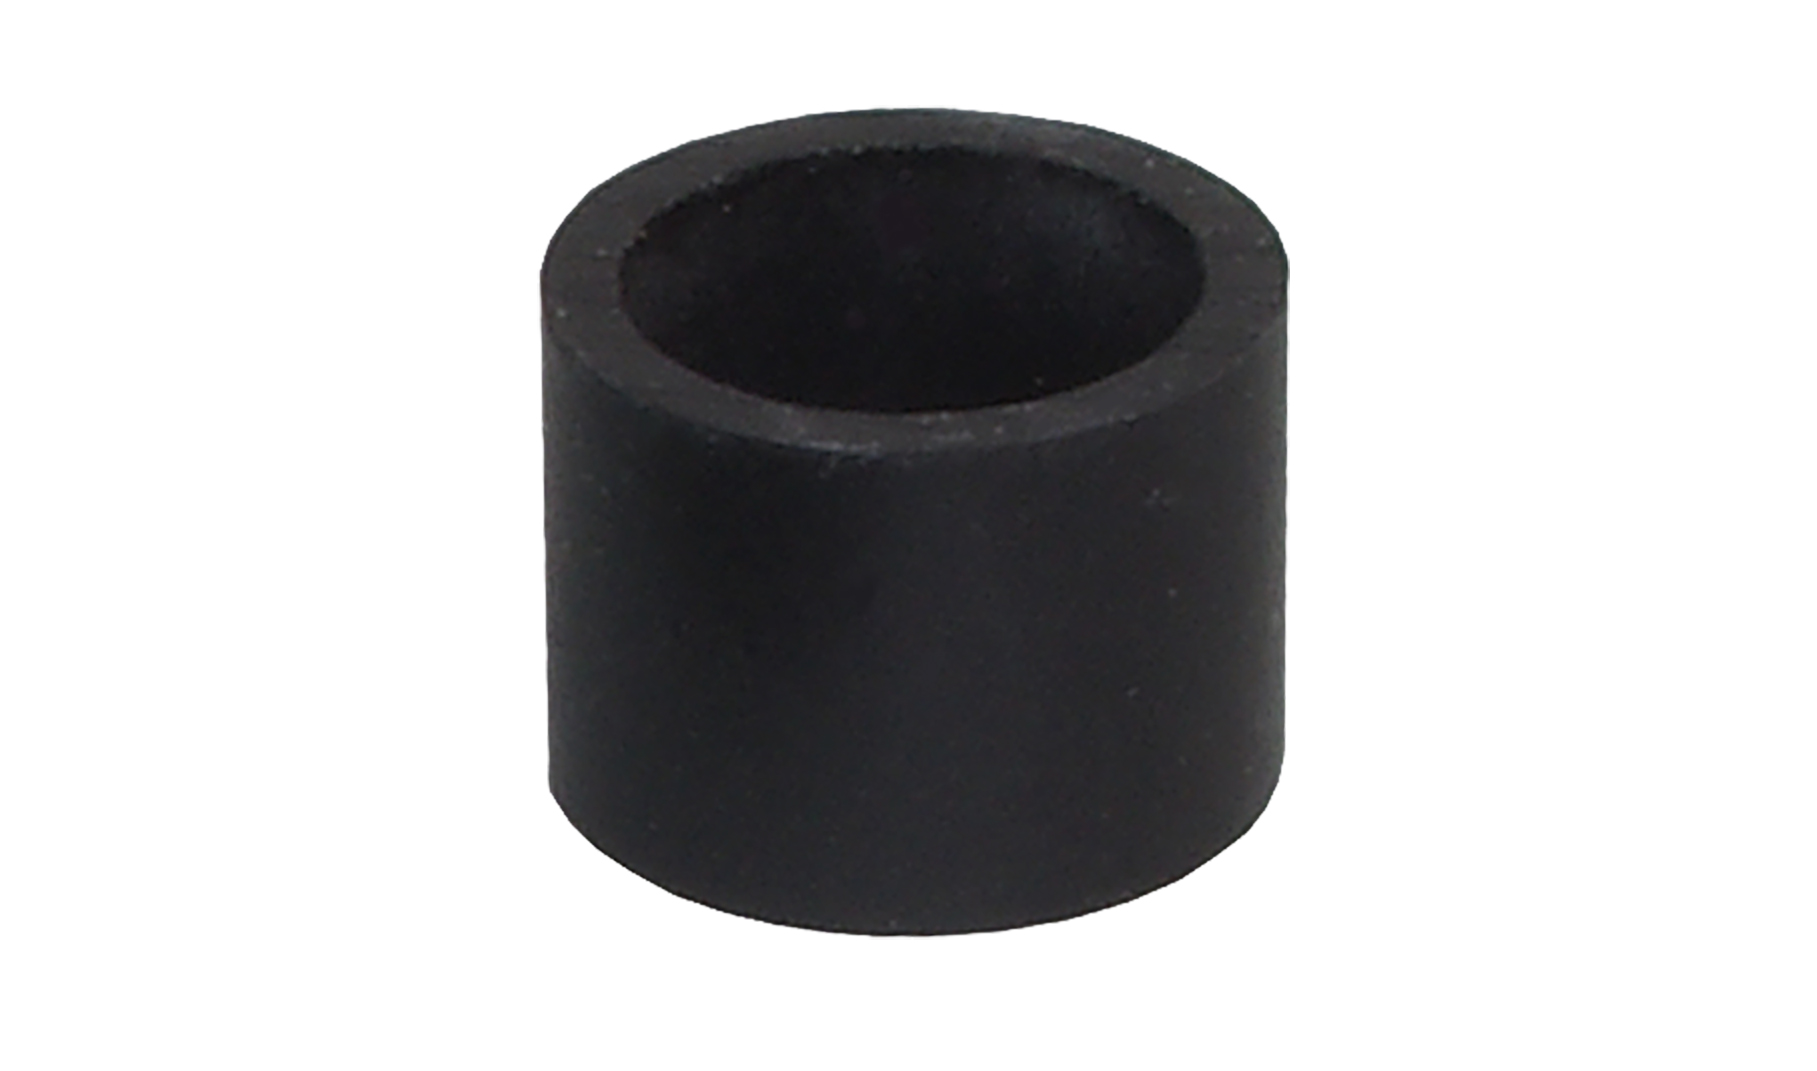 Gasket 16x13x12 EPDM (only available in set)